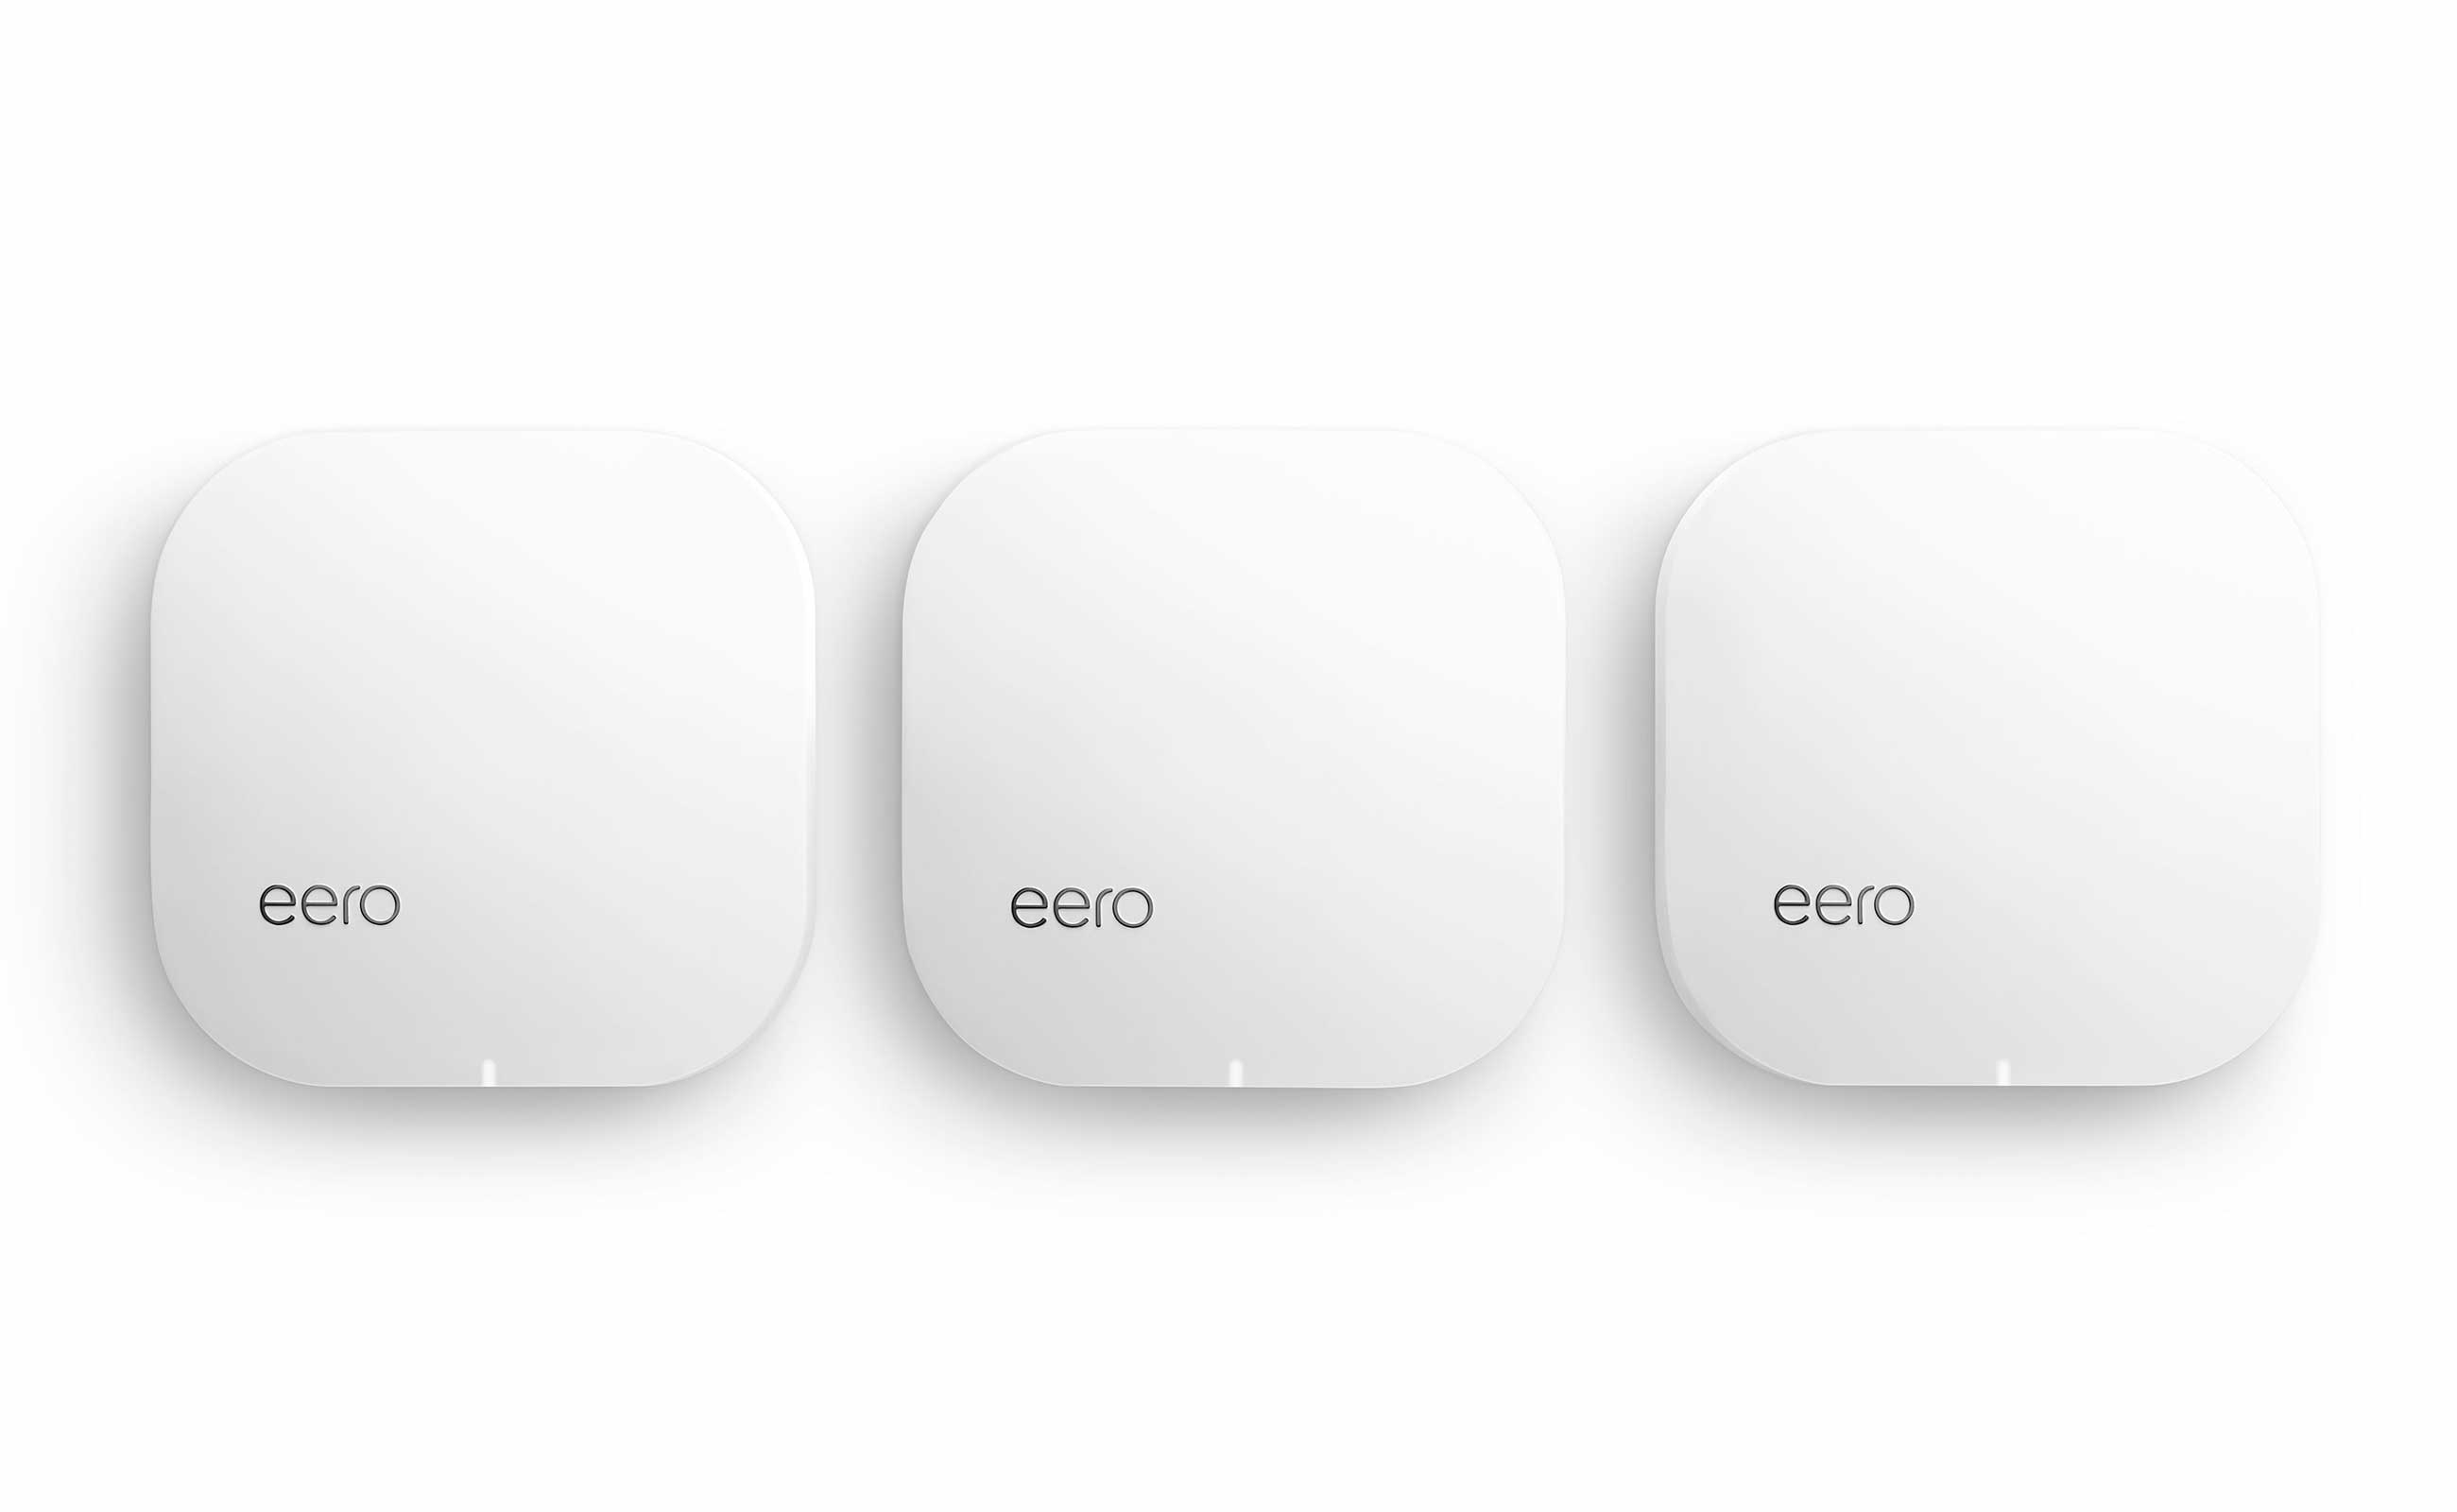 Pro WiFi System product shots